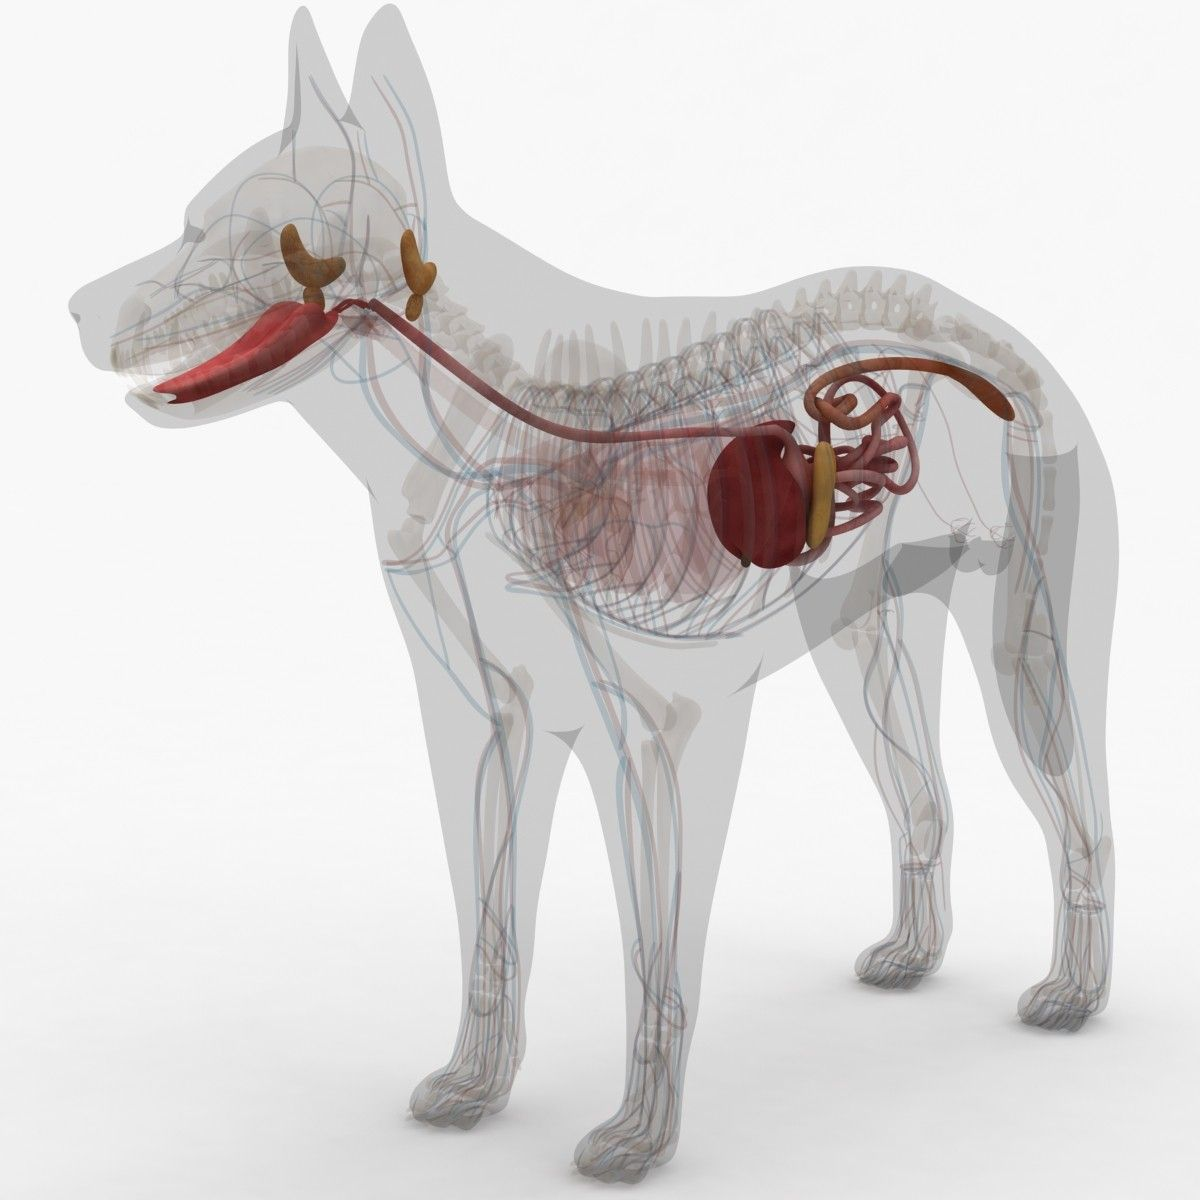 3d model dugm01 dog anatomy male female | Veterinary | Pinterest ...